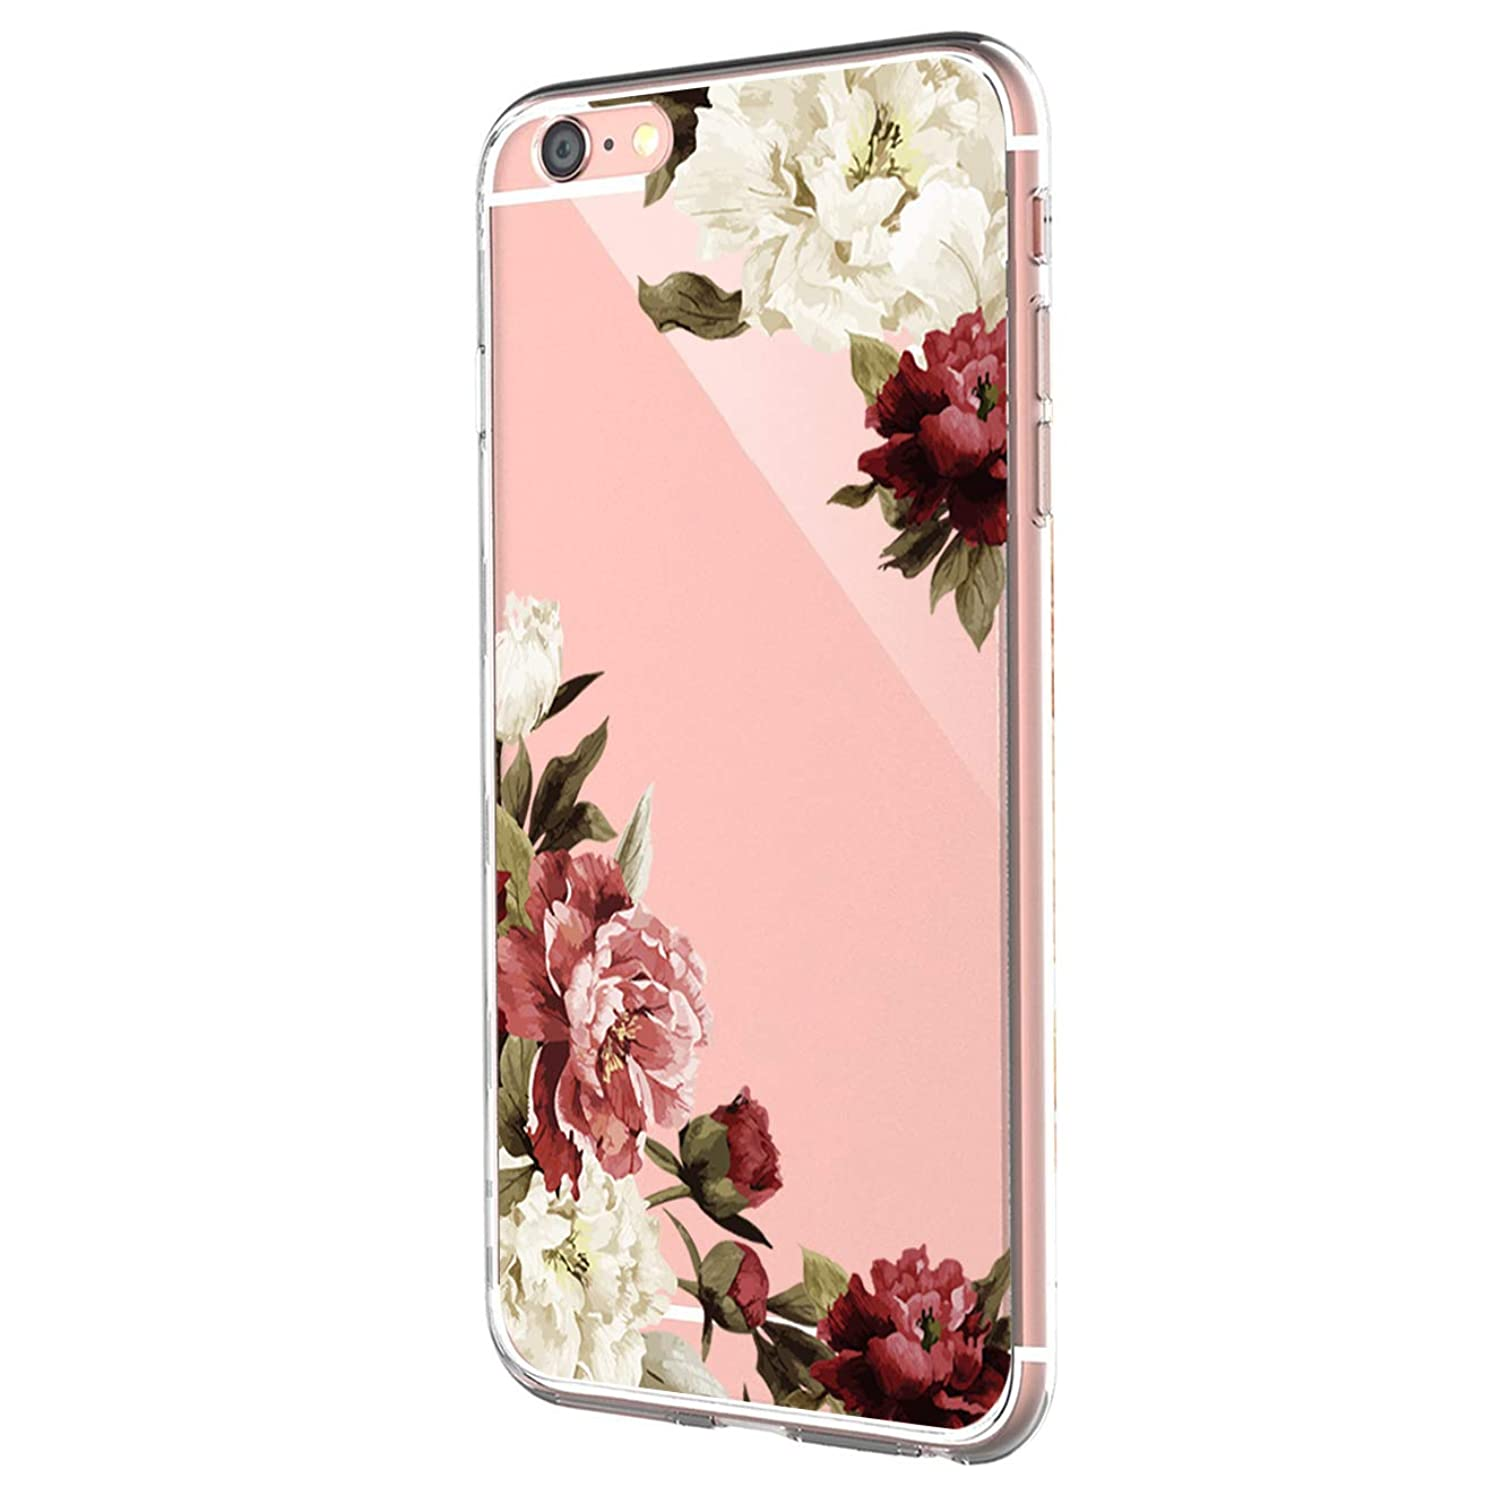 Case Compatible with iPhone6s Case, iPhone 6 Case Soft TPU Art Pattern Case for iPhone 6/6S (Tropical Palm Tree Leaves)